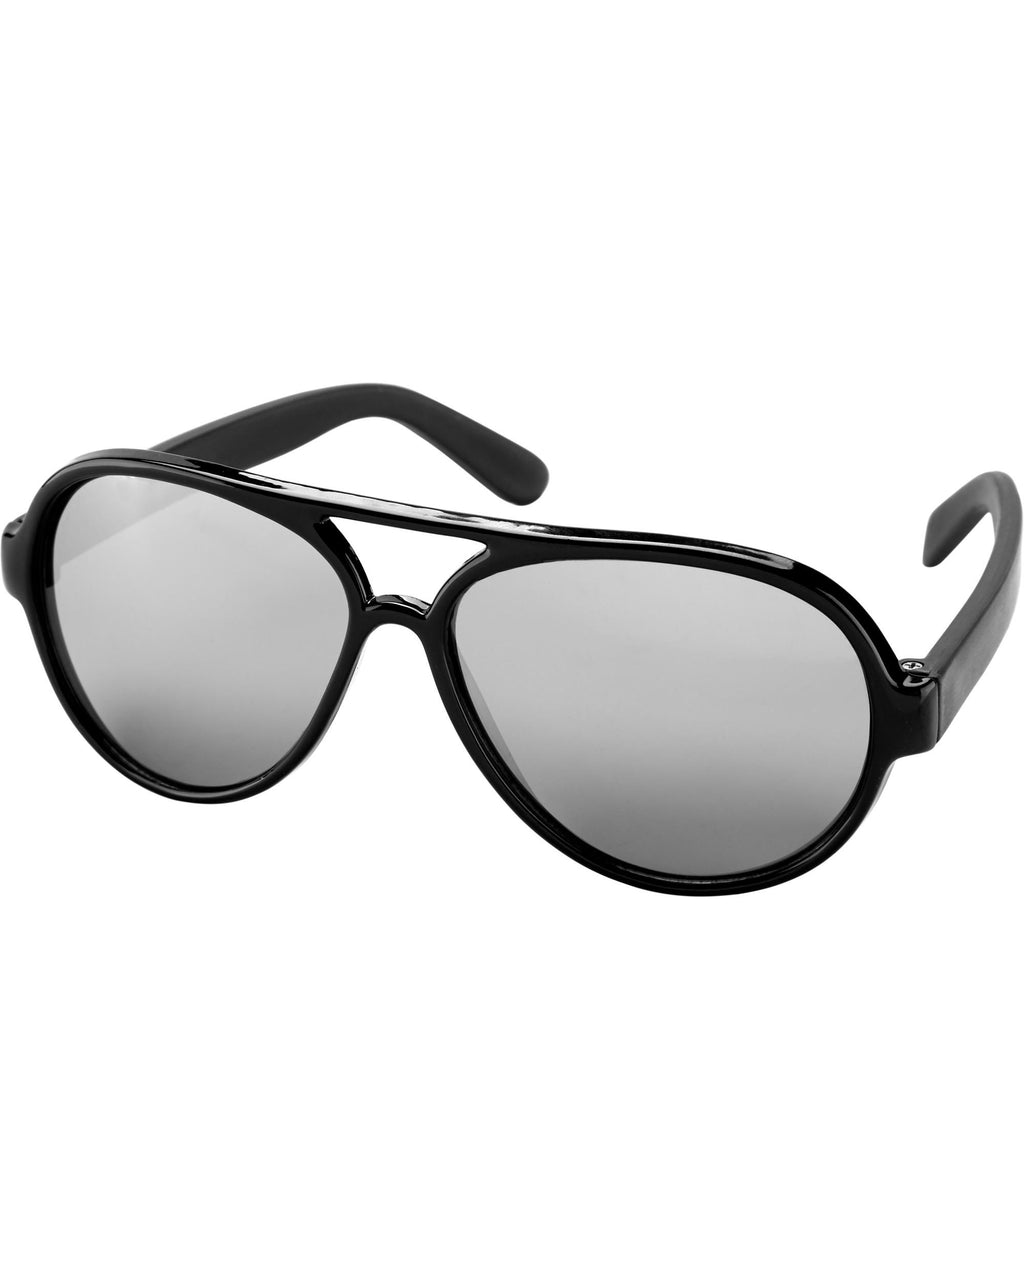 Lentes de sol CARTERS Flight Sunglasses